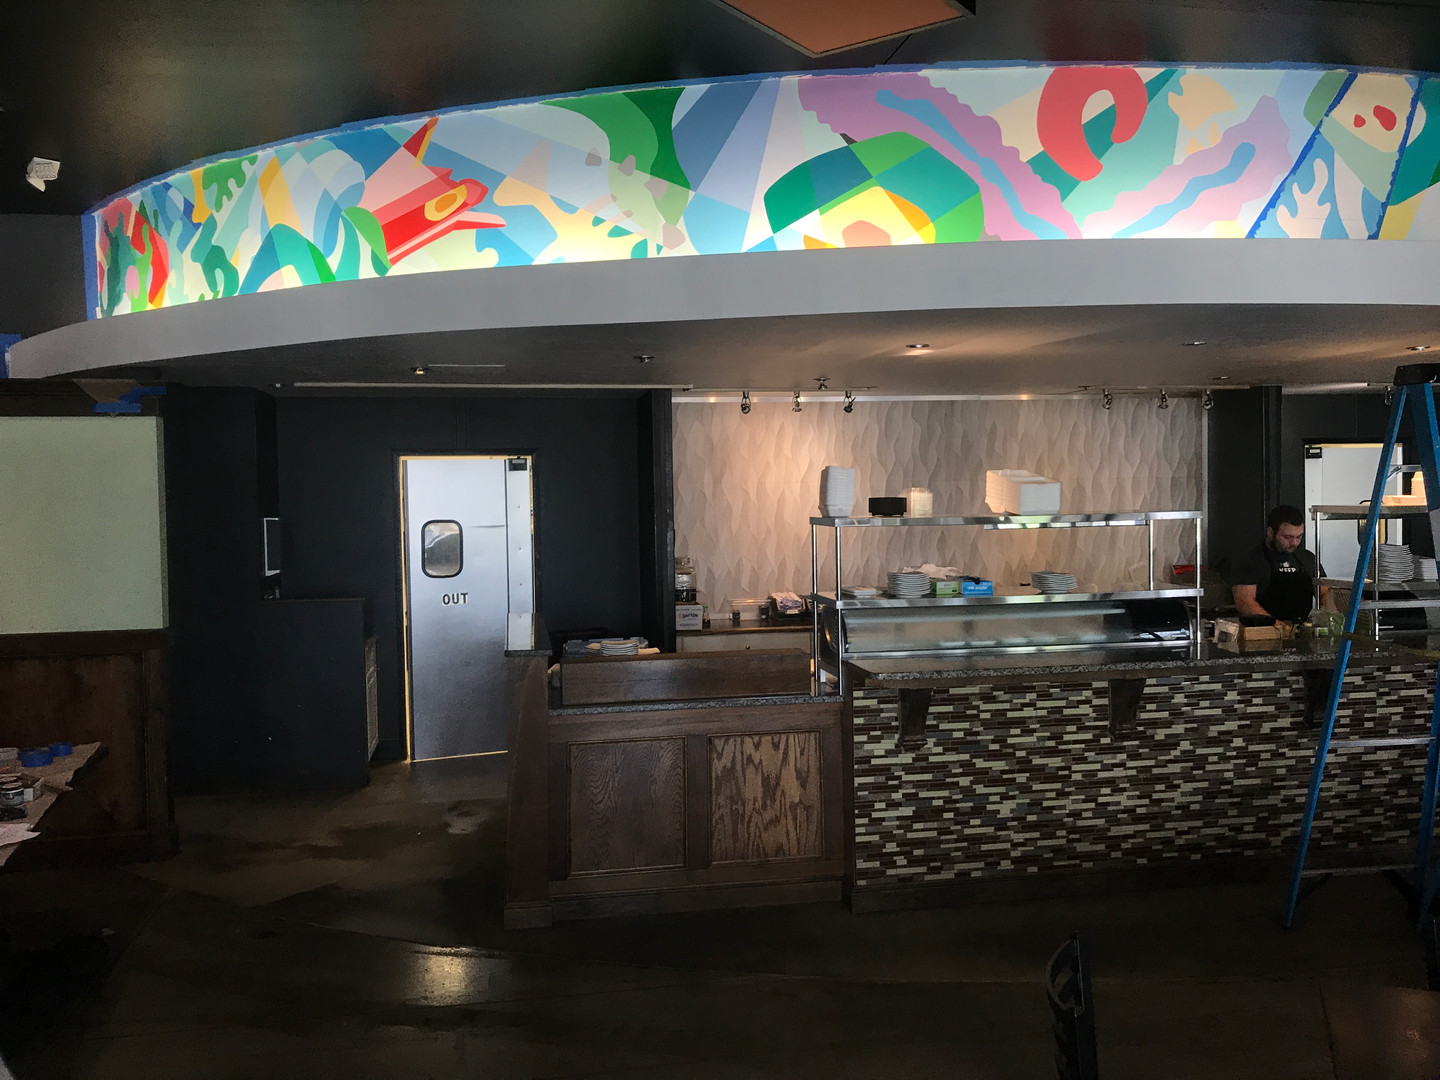 Mural 2, above the Sushi Bar, wip